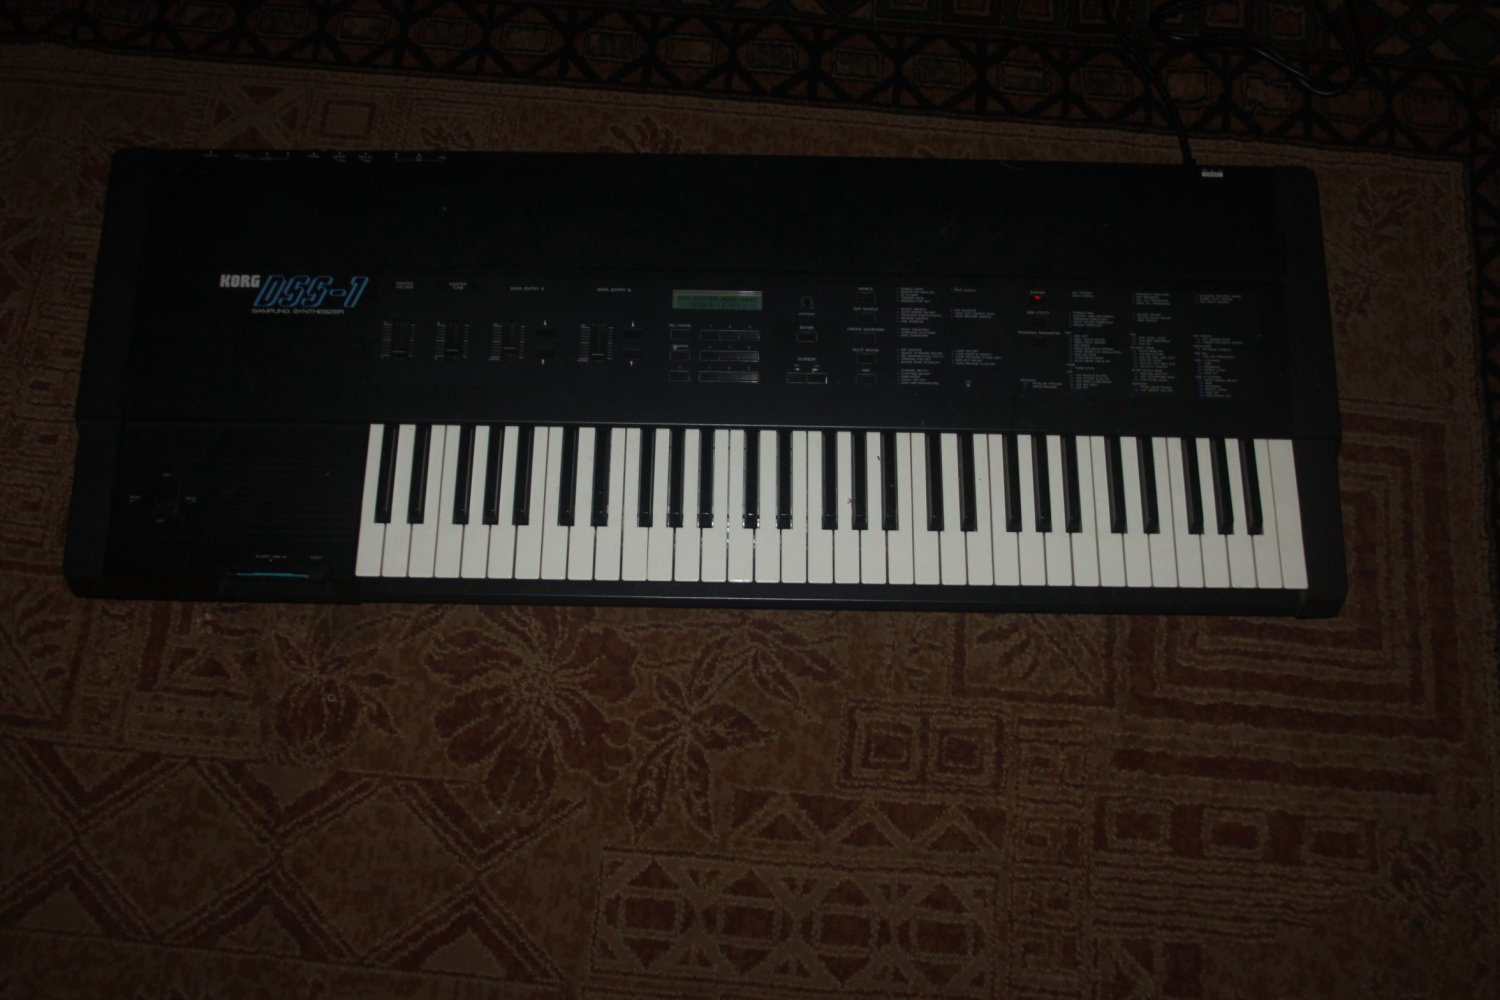 KORG DSS-1 Sampling Synthesizer with good keys 8/16